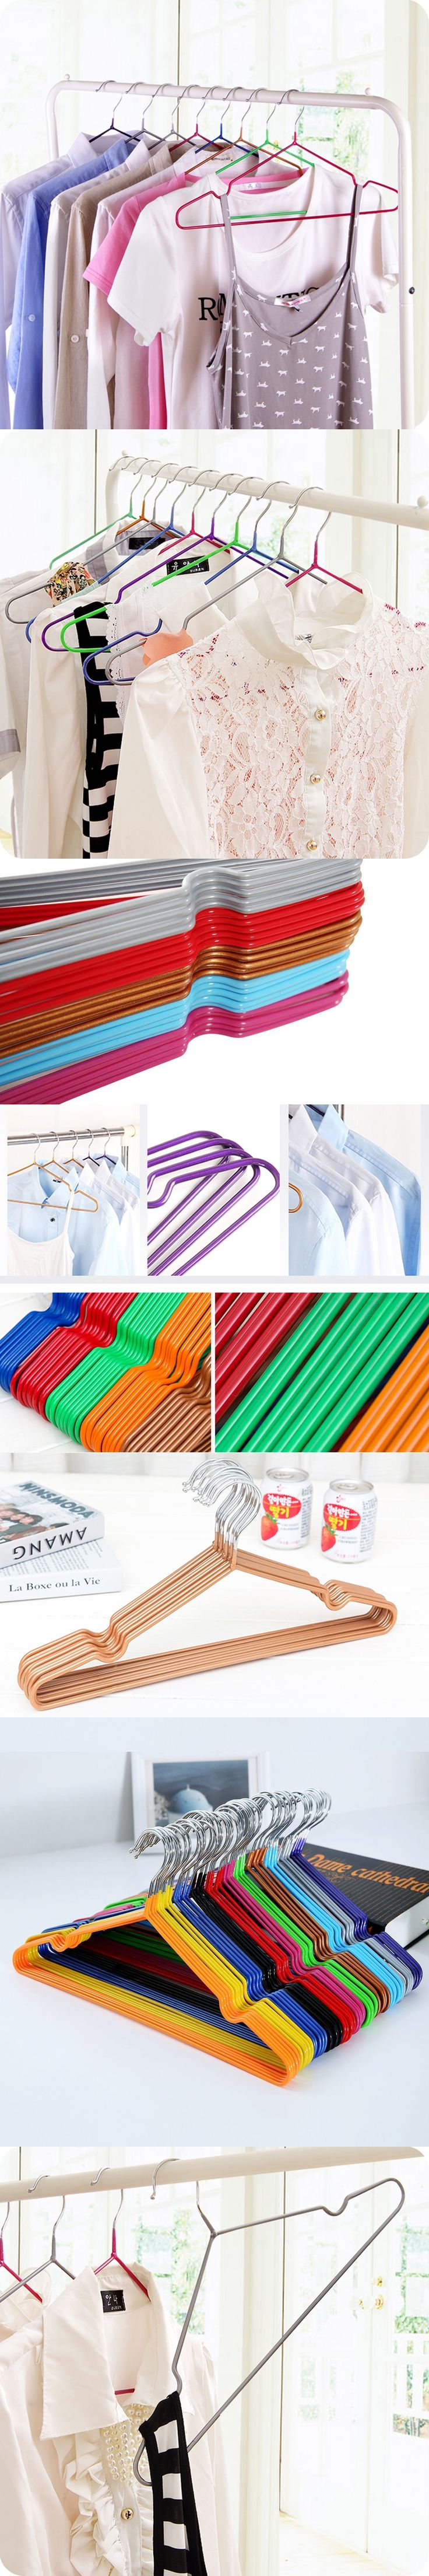 1pcs EZLIFE Durable Hanger Anti-skid Plastic Clothes Hangers For Clothes Drying Clothes Rack Adult And Children Hanger